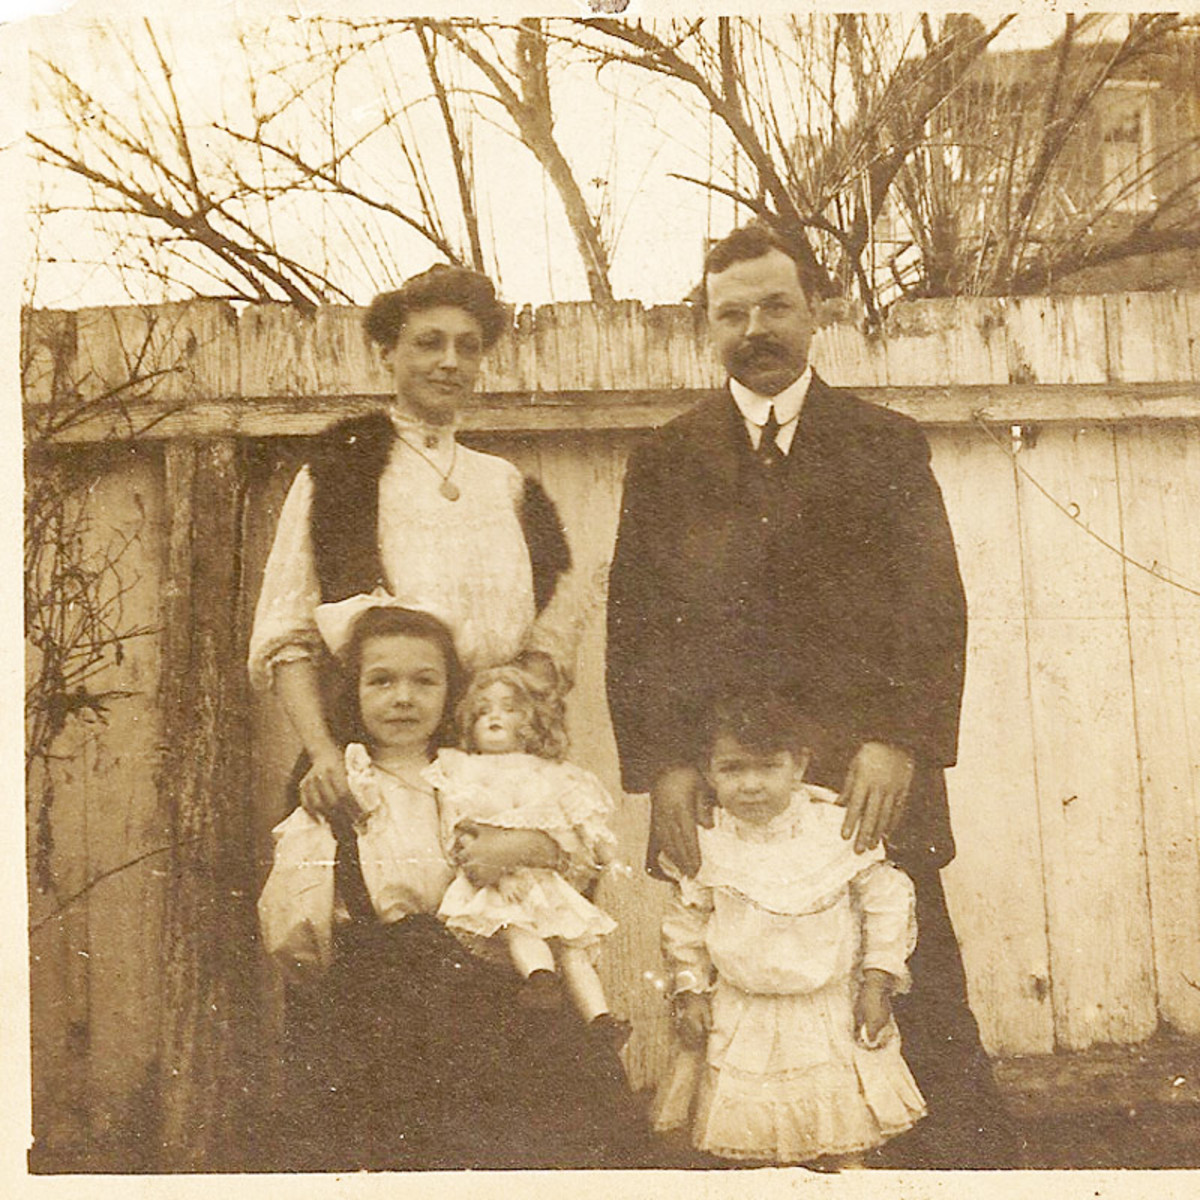 Alfred Cookman Leach and family. The little one is Katherine.